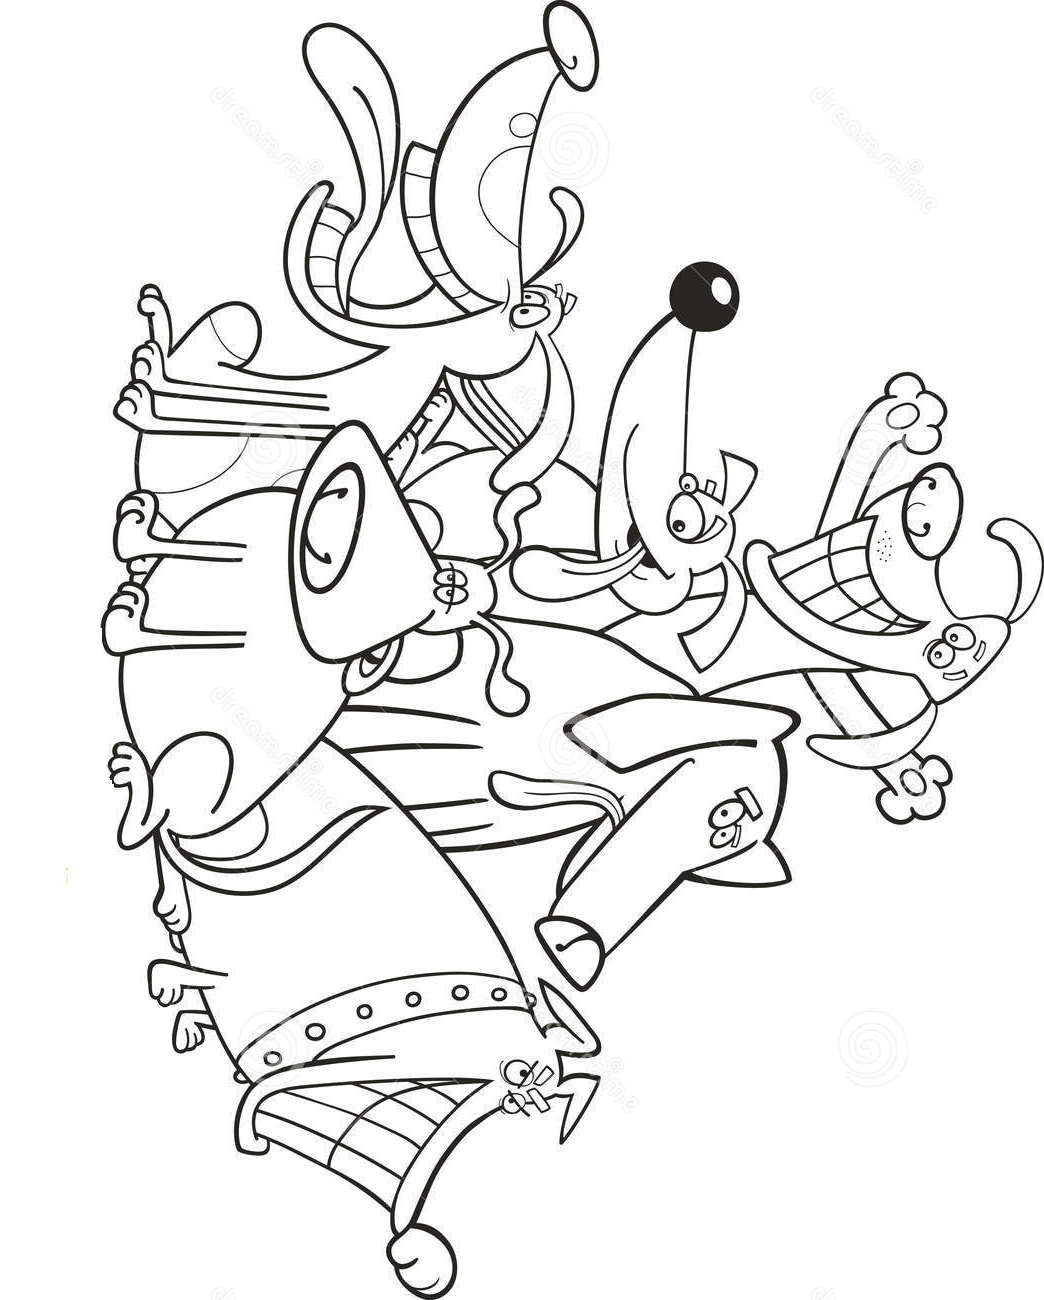 Funny Dogs Coloring Page